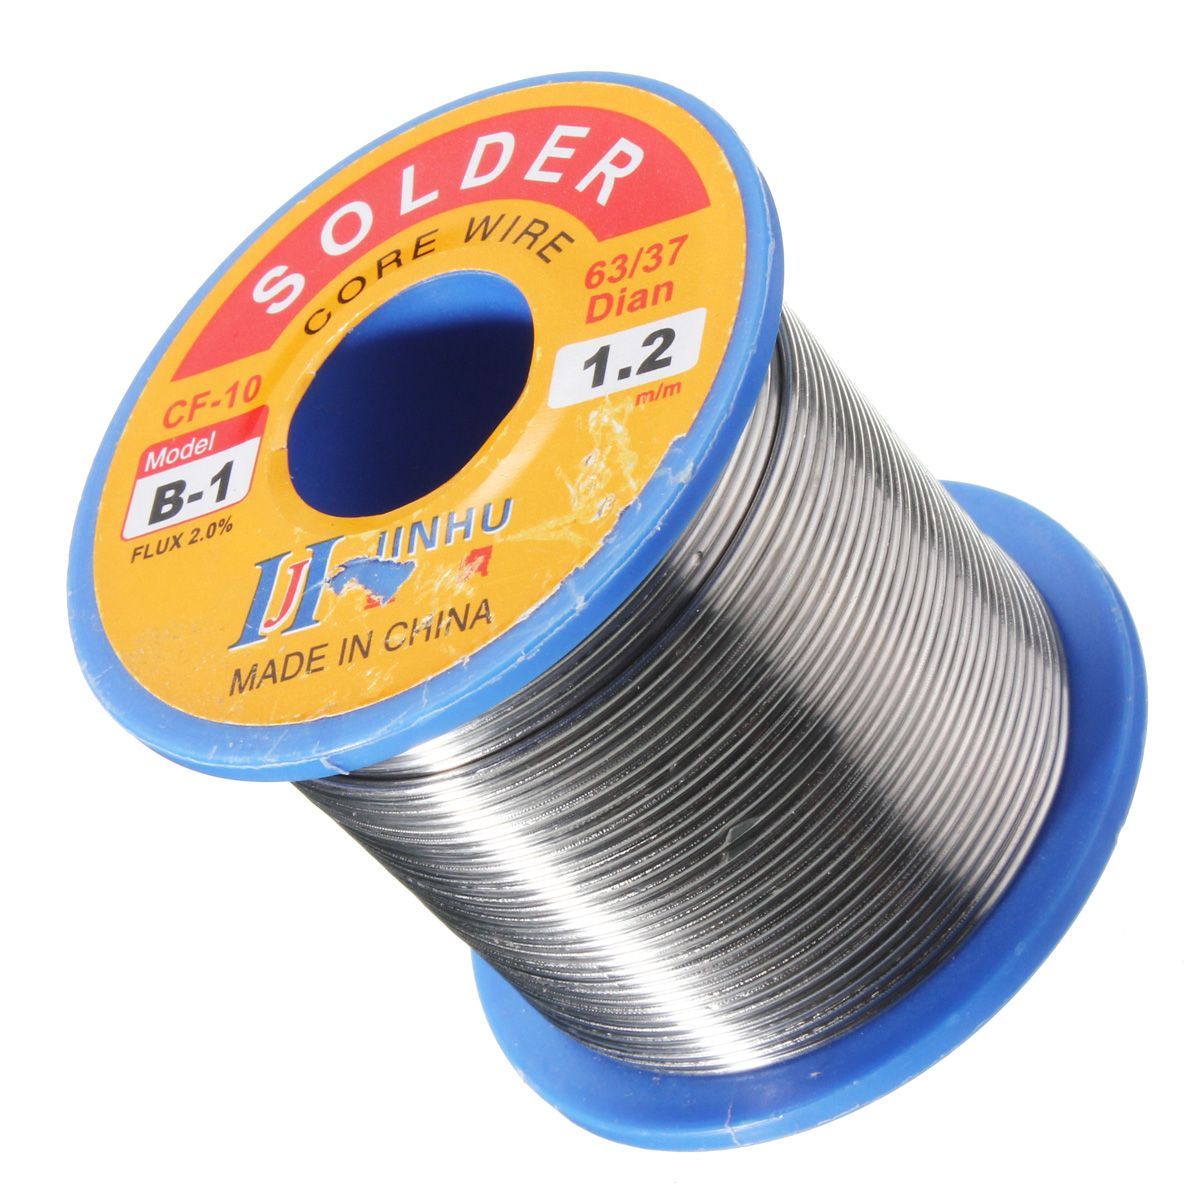 300g 12mm Reel Roll Welding Wire Solder 63 37 Tin Lead Tools Bga Soldering Tool Kit 12 Different Circuit Board Flux